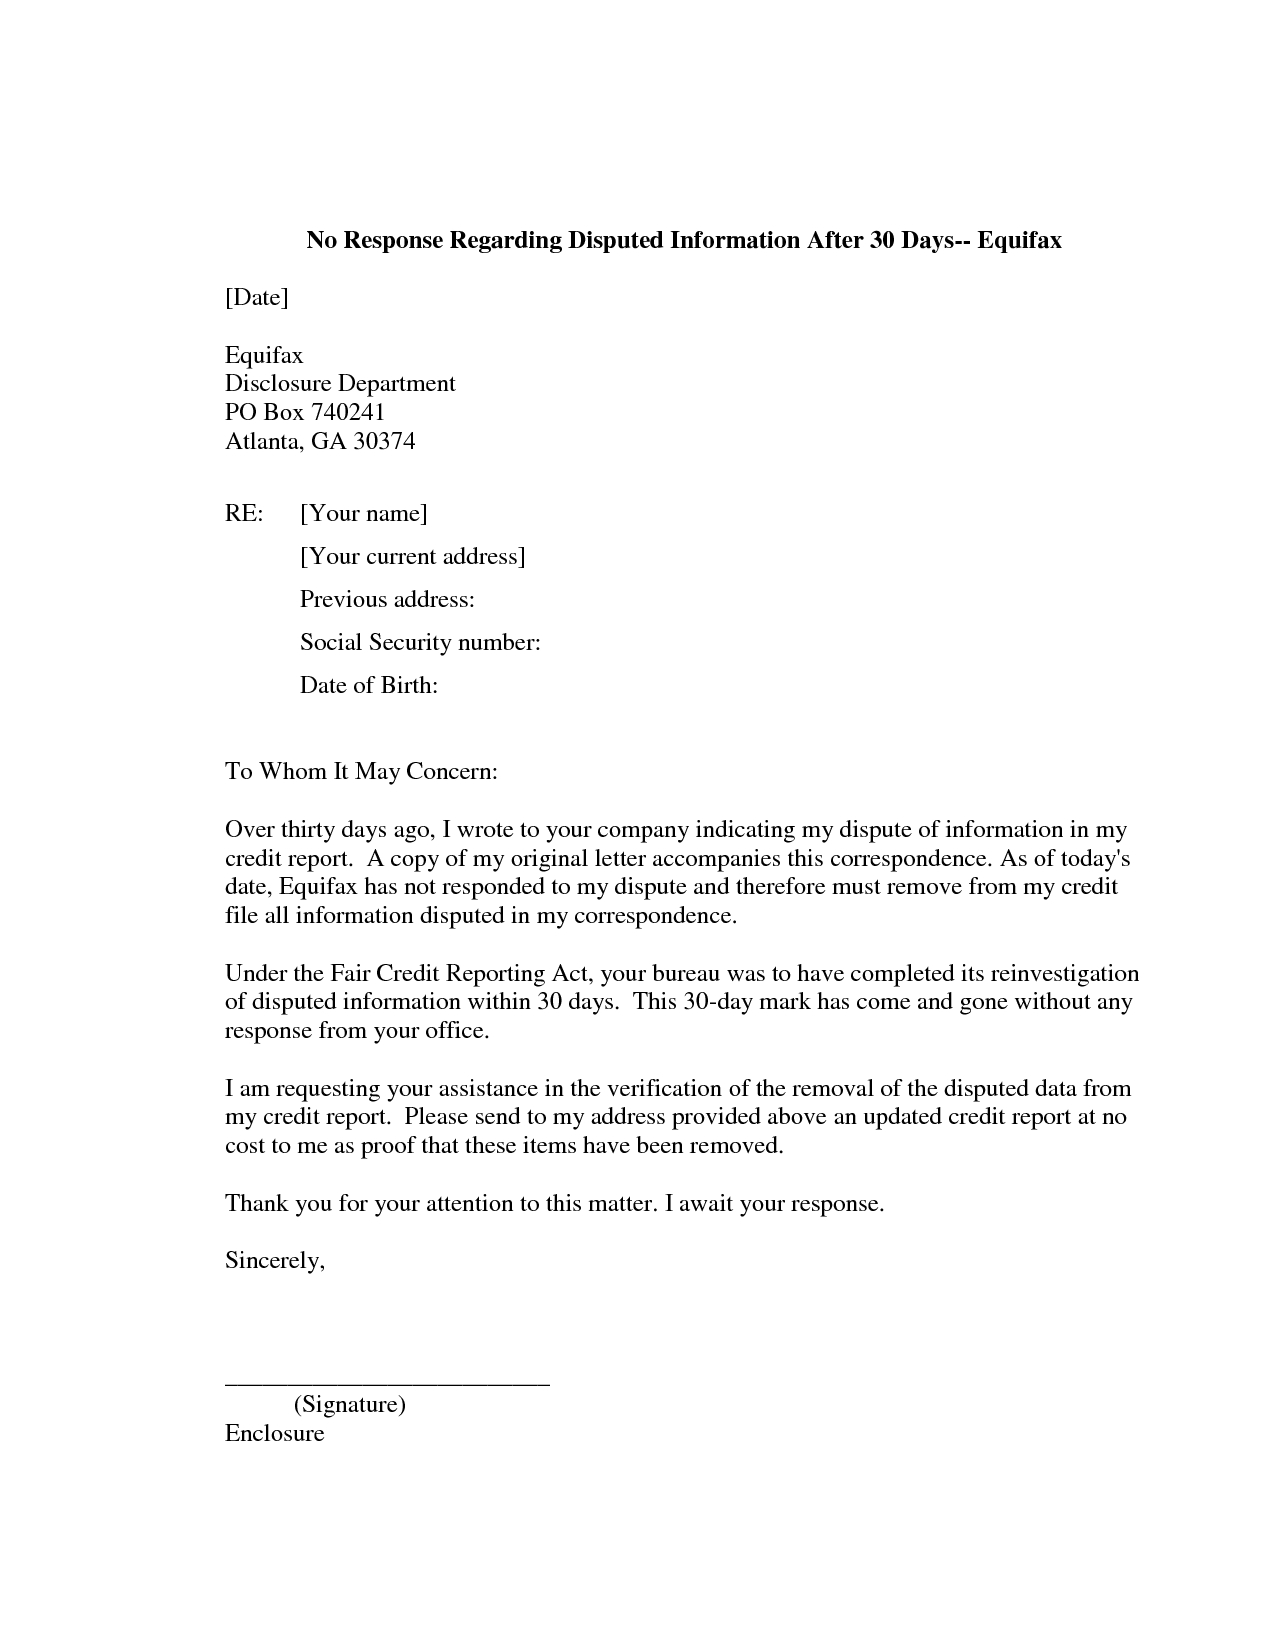 Credit Agency Dispute Letter Template - Free Cover Letter Templates Debt Validation Letter Sample